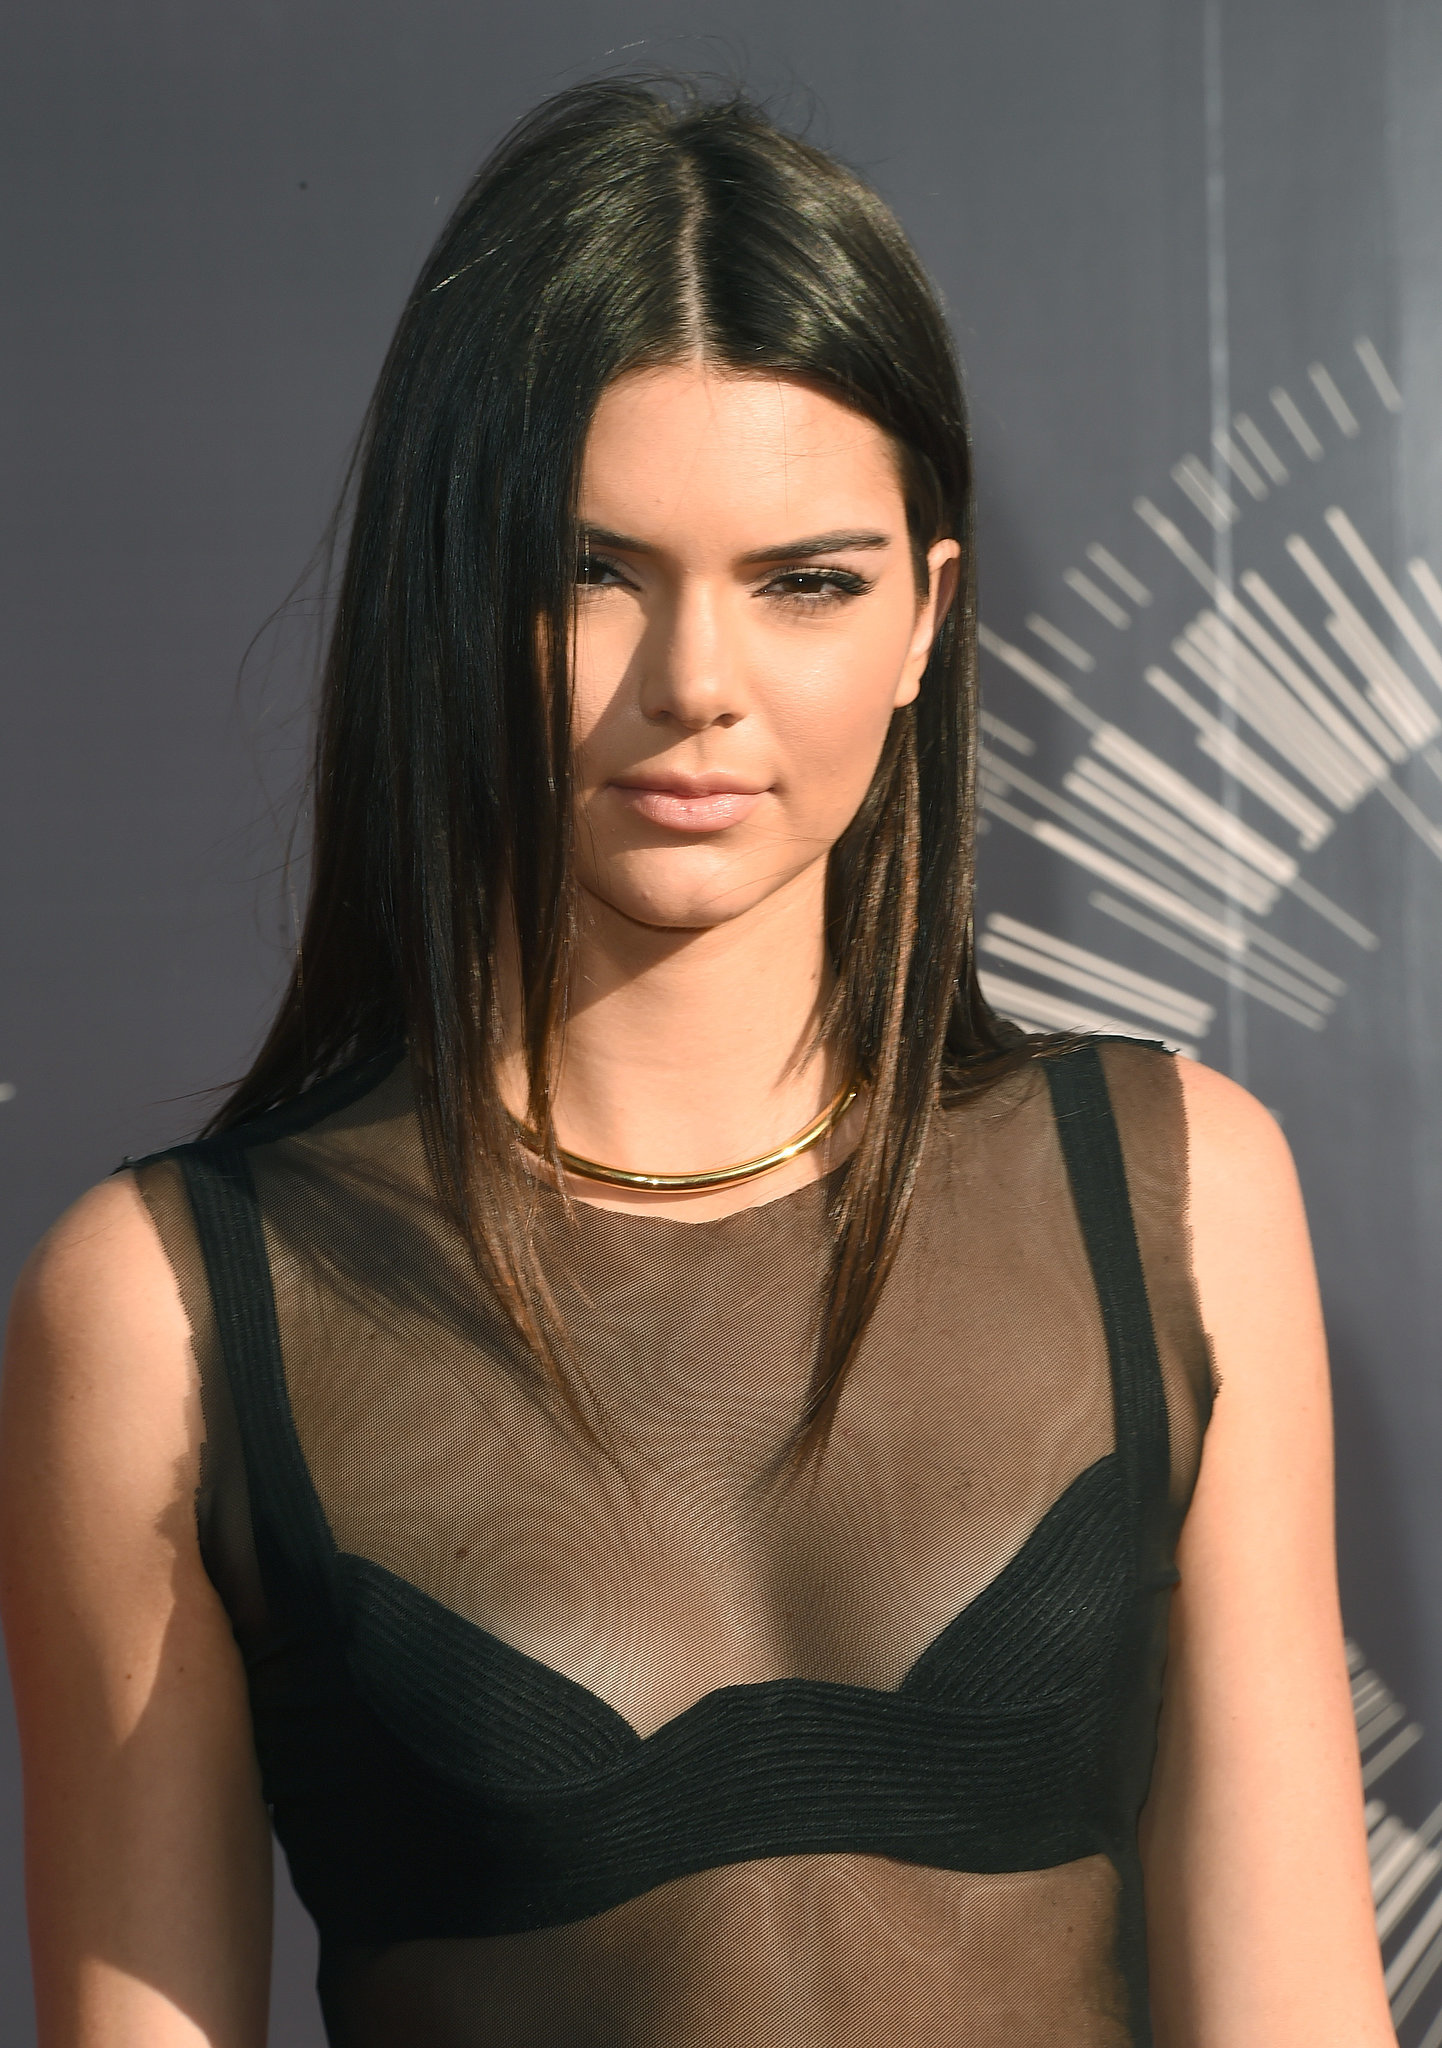 kendall-jenner-bikini-hot-sexy-leaked-photos